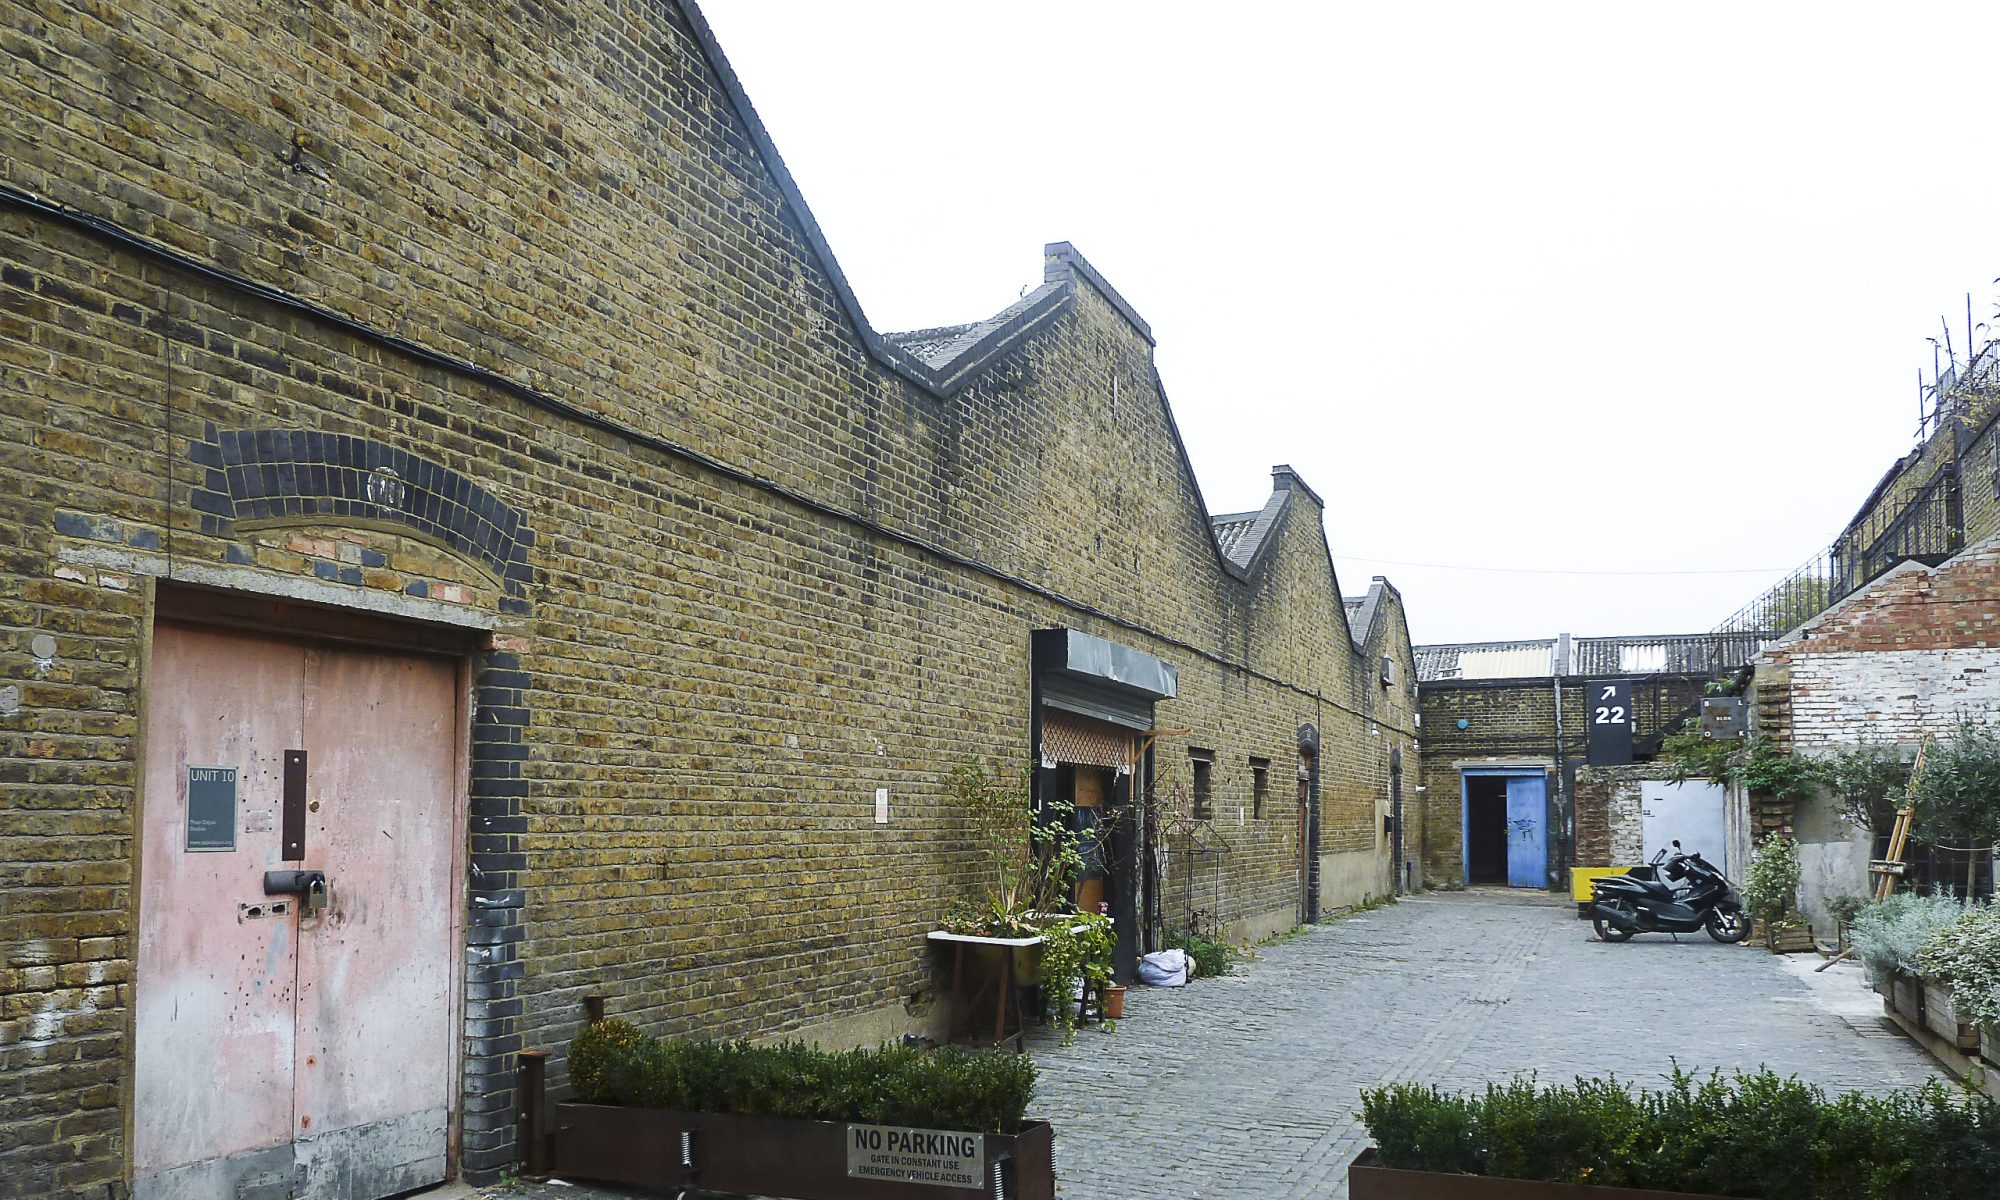 CLAPTON WAREHOUSES